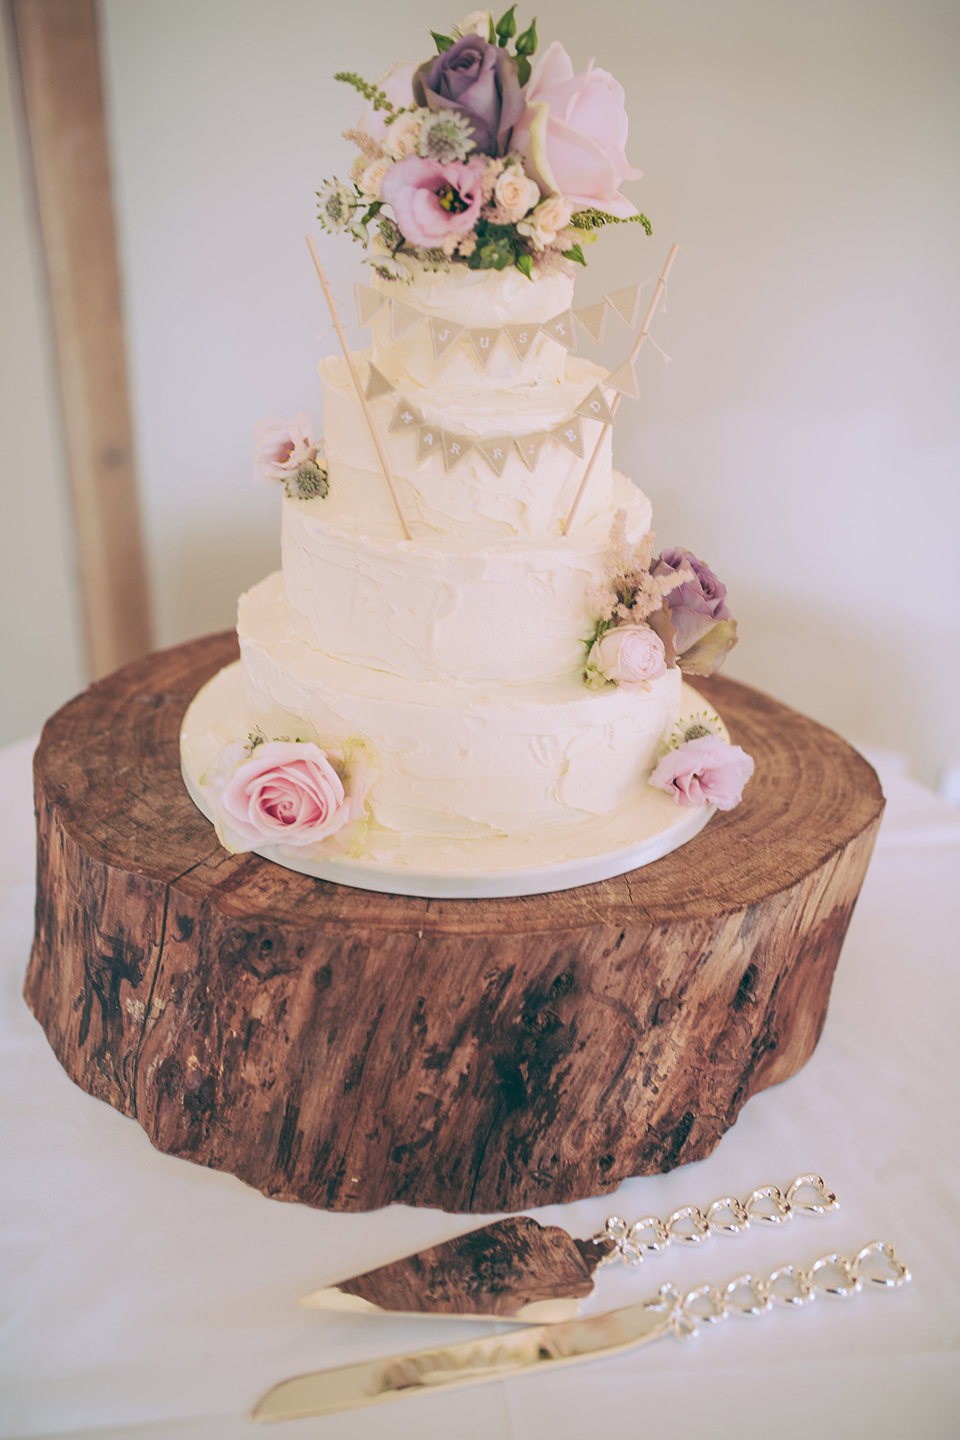 A three-tiered wedding cake sits on a rustic log slice for this summer wedding at Bassmead Manor Barns